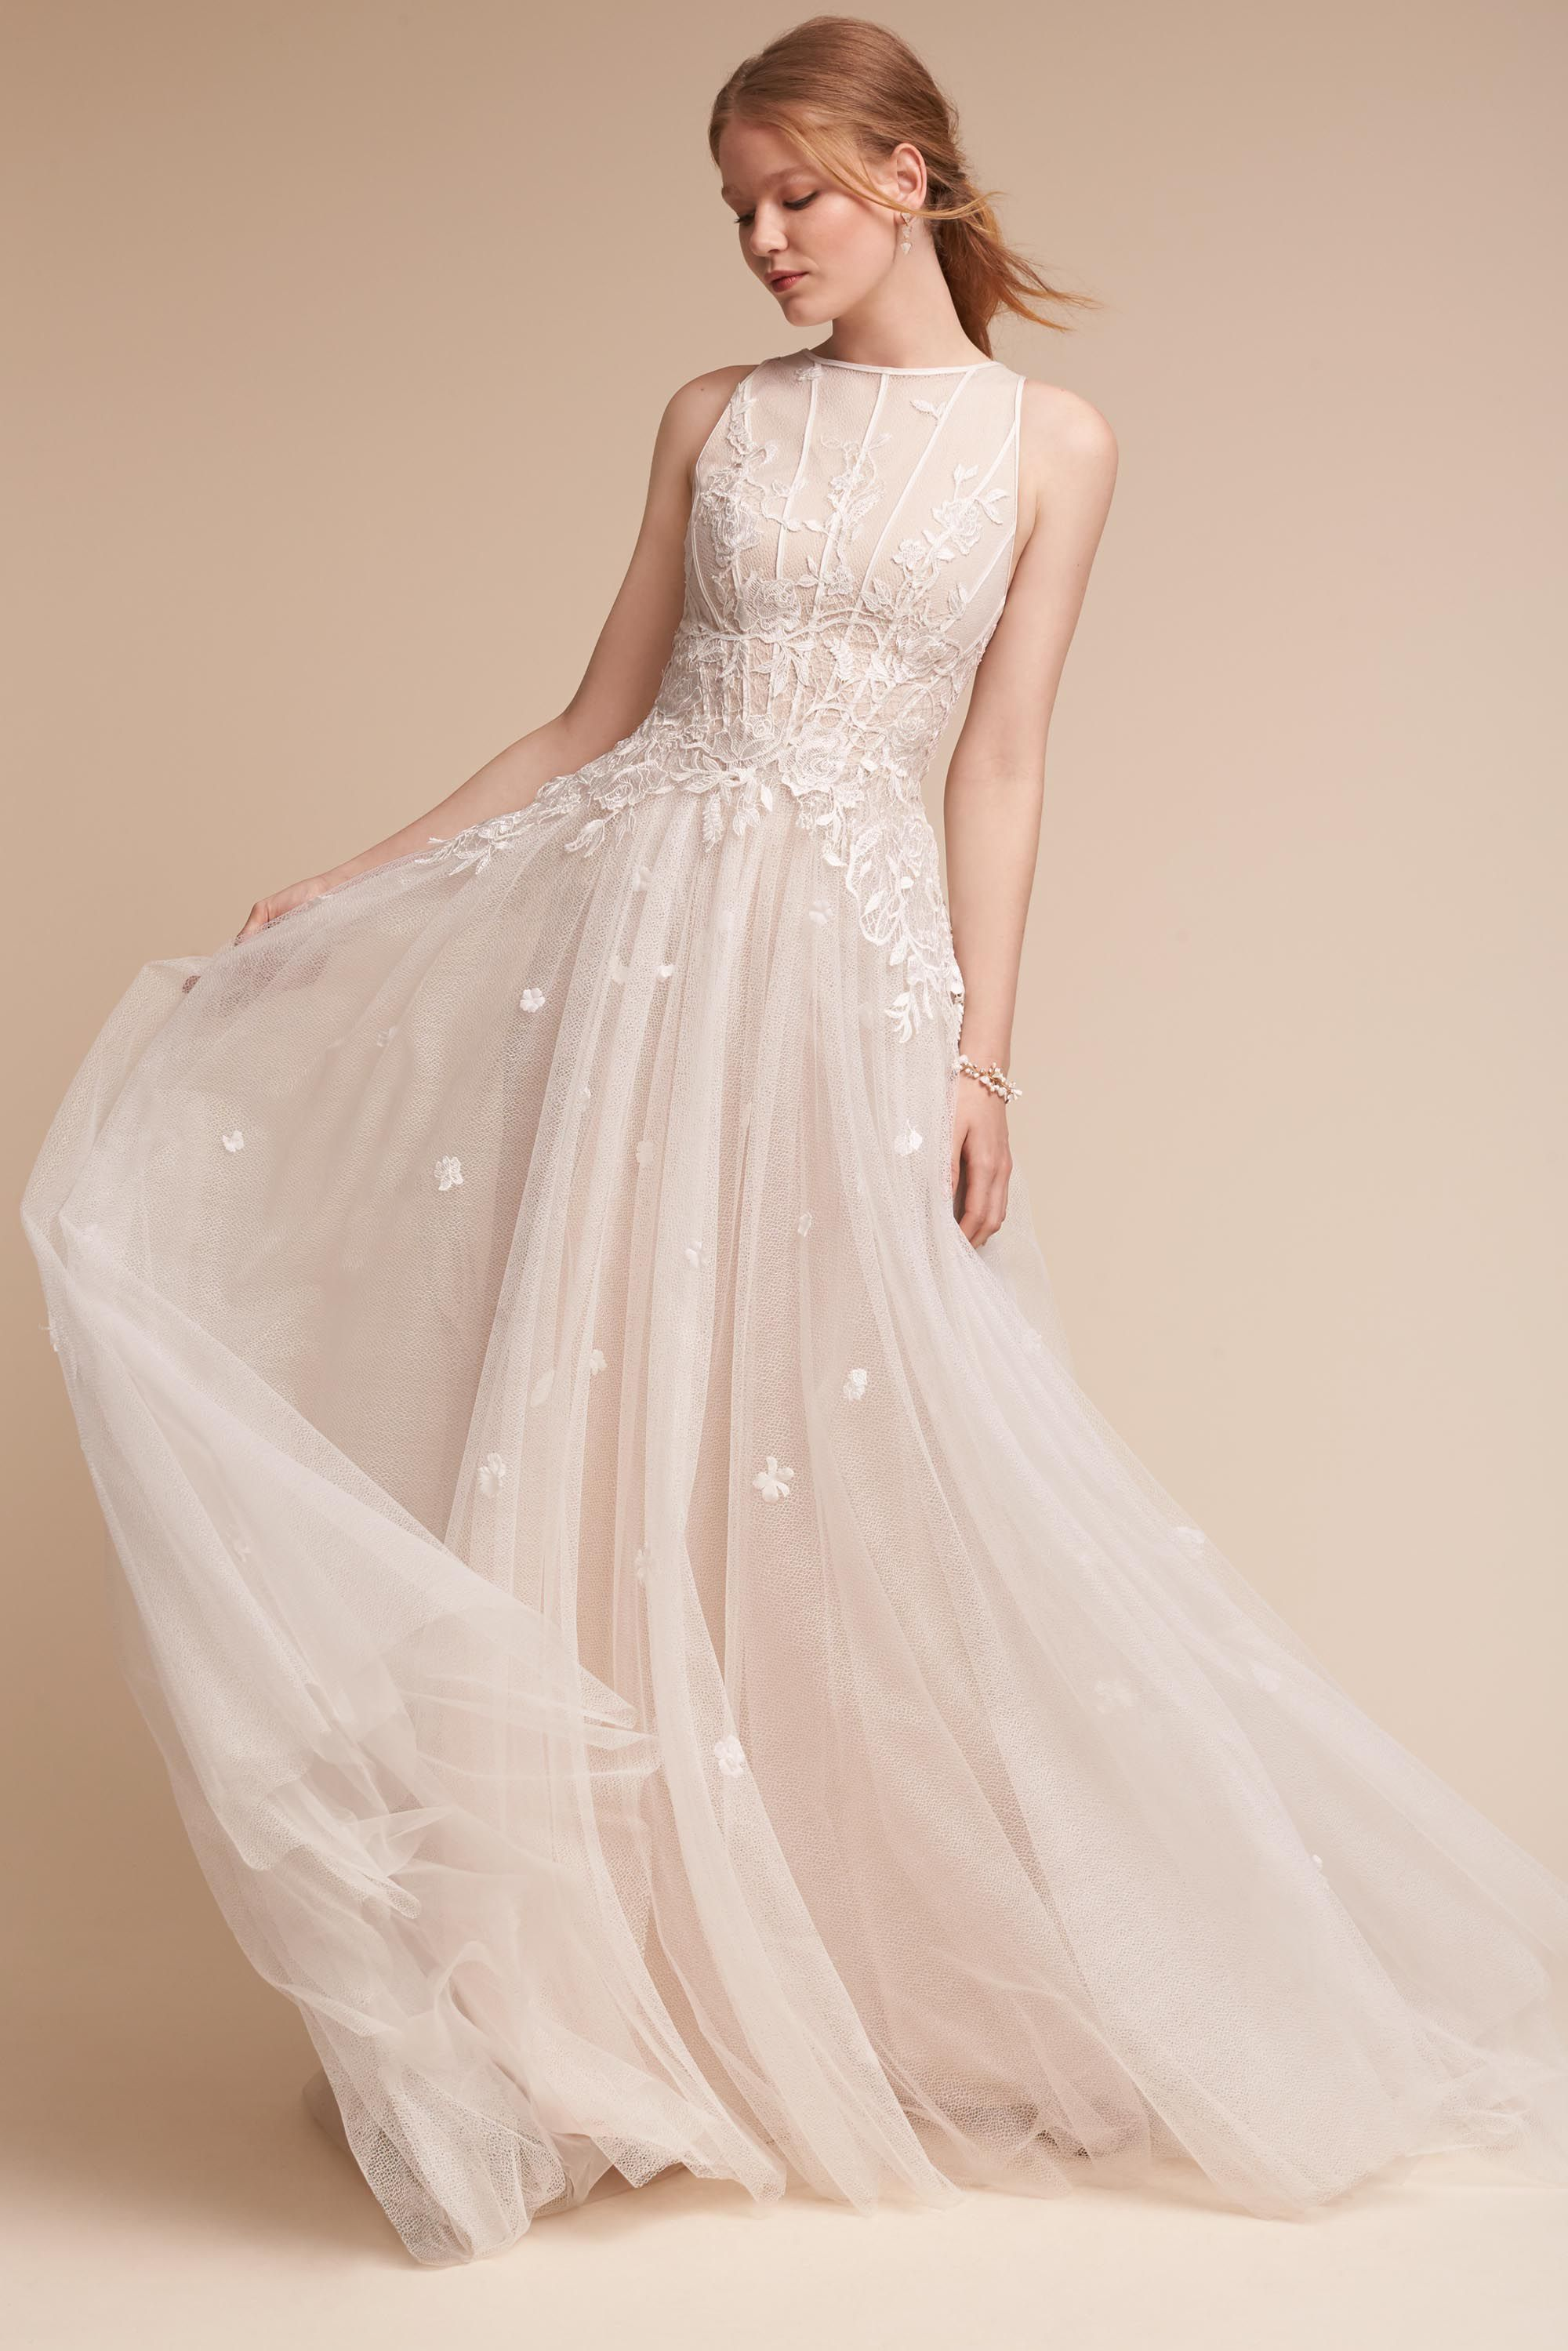 Queensland Gown | Where to Buy BHLDN Wedding Dresses